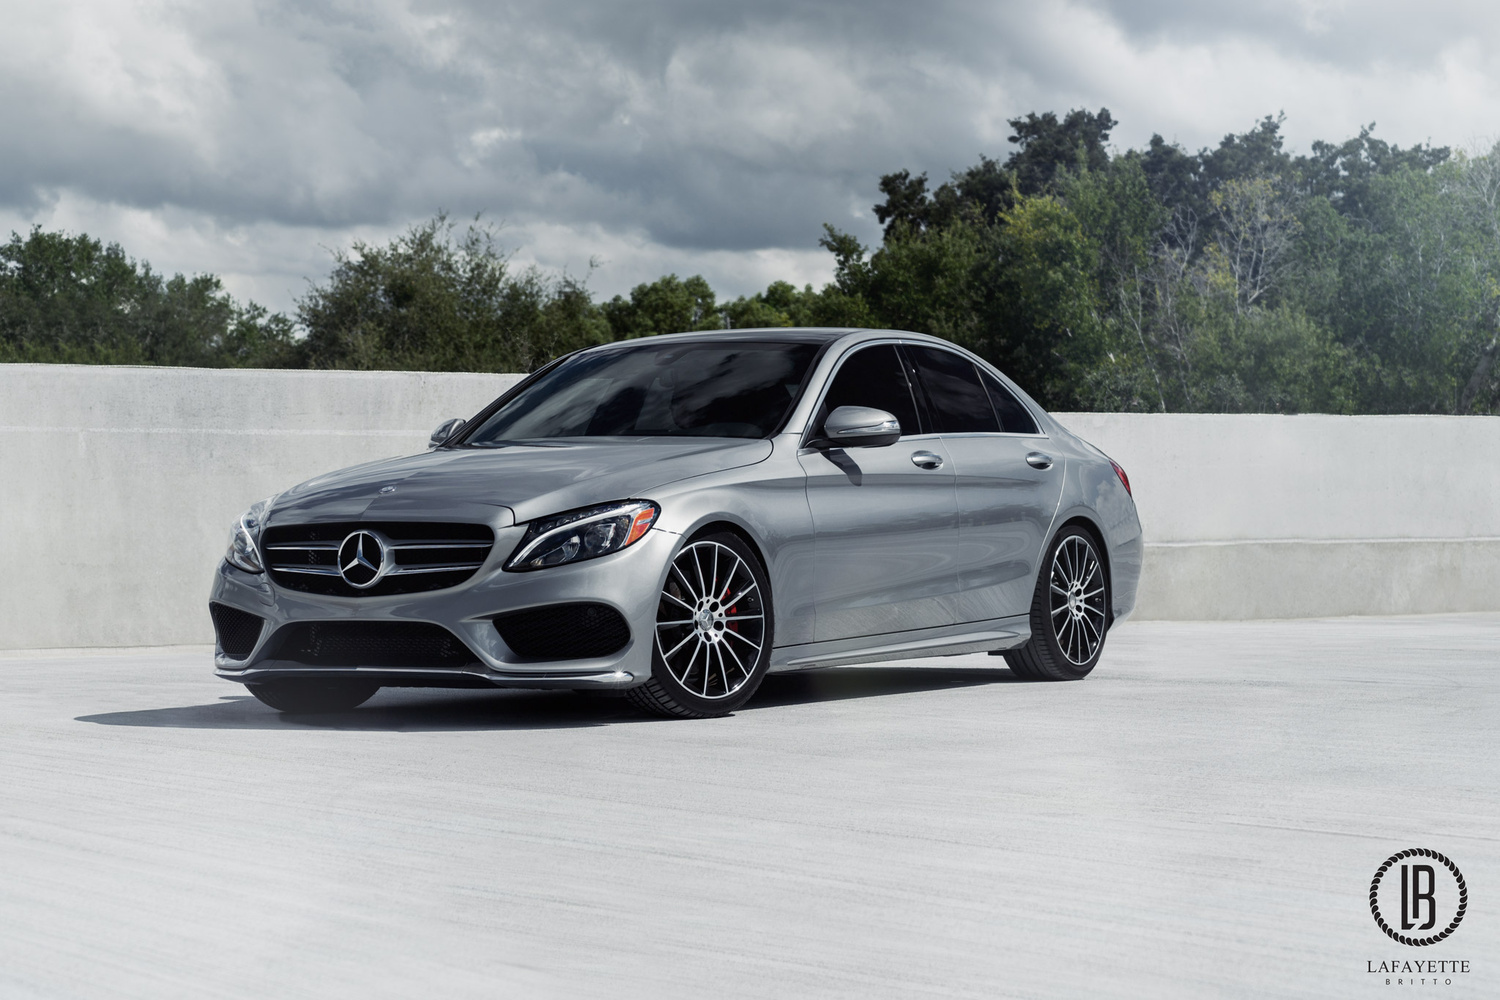 Mercedes Benz C300 Sport with AMG Package by Lafayette Britto